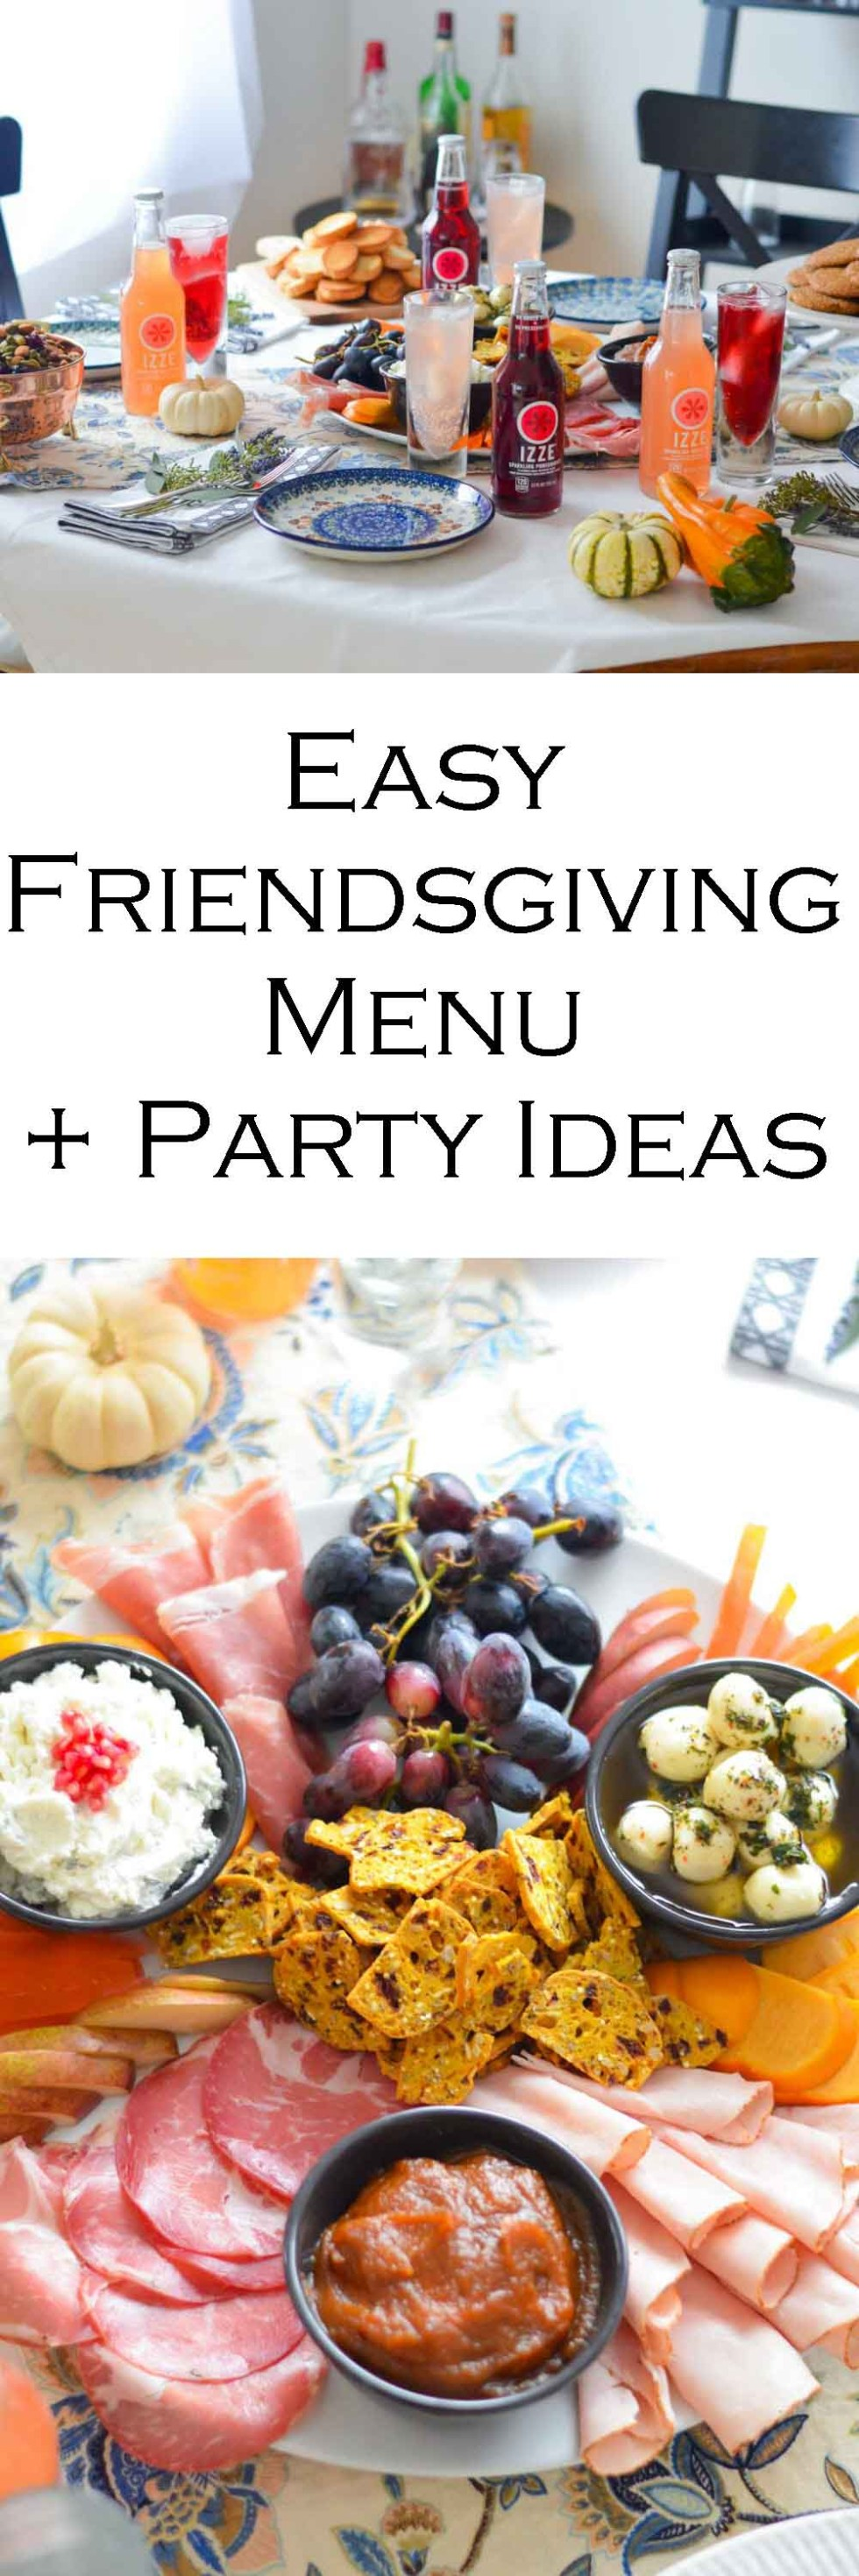 Easy Friendsgiving Ideas + Party Menu #friendsgiving #charctuerie #entertaining #hostess #meatplatter #cheeseplatter #hosting #foodideas #foodbloggers